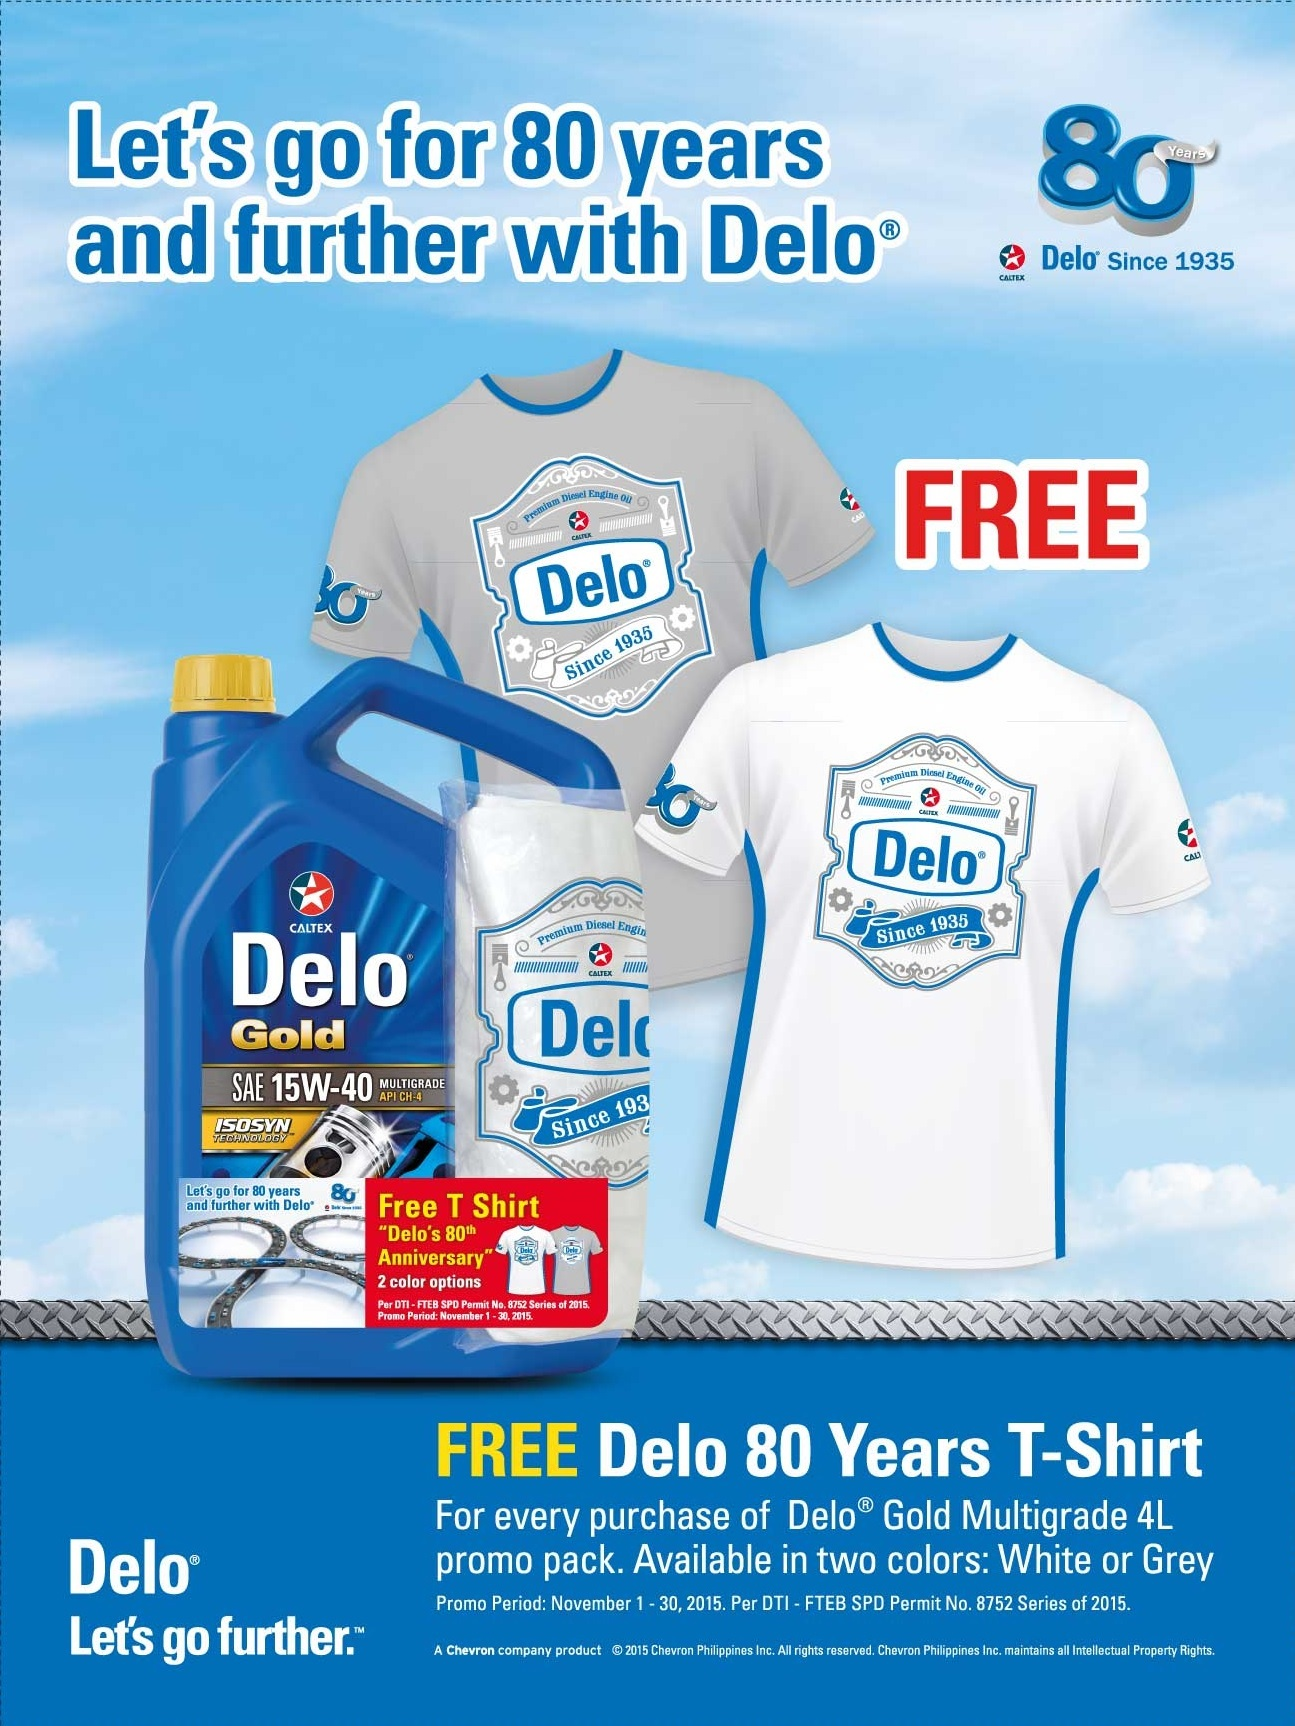 Delo 80 years free shirt